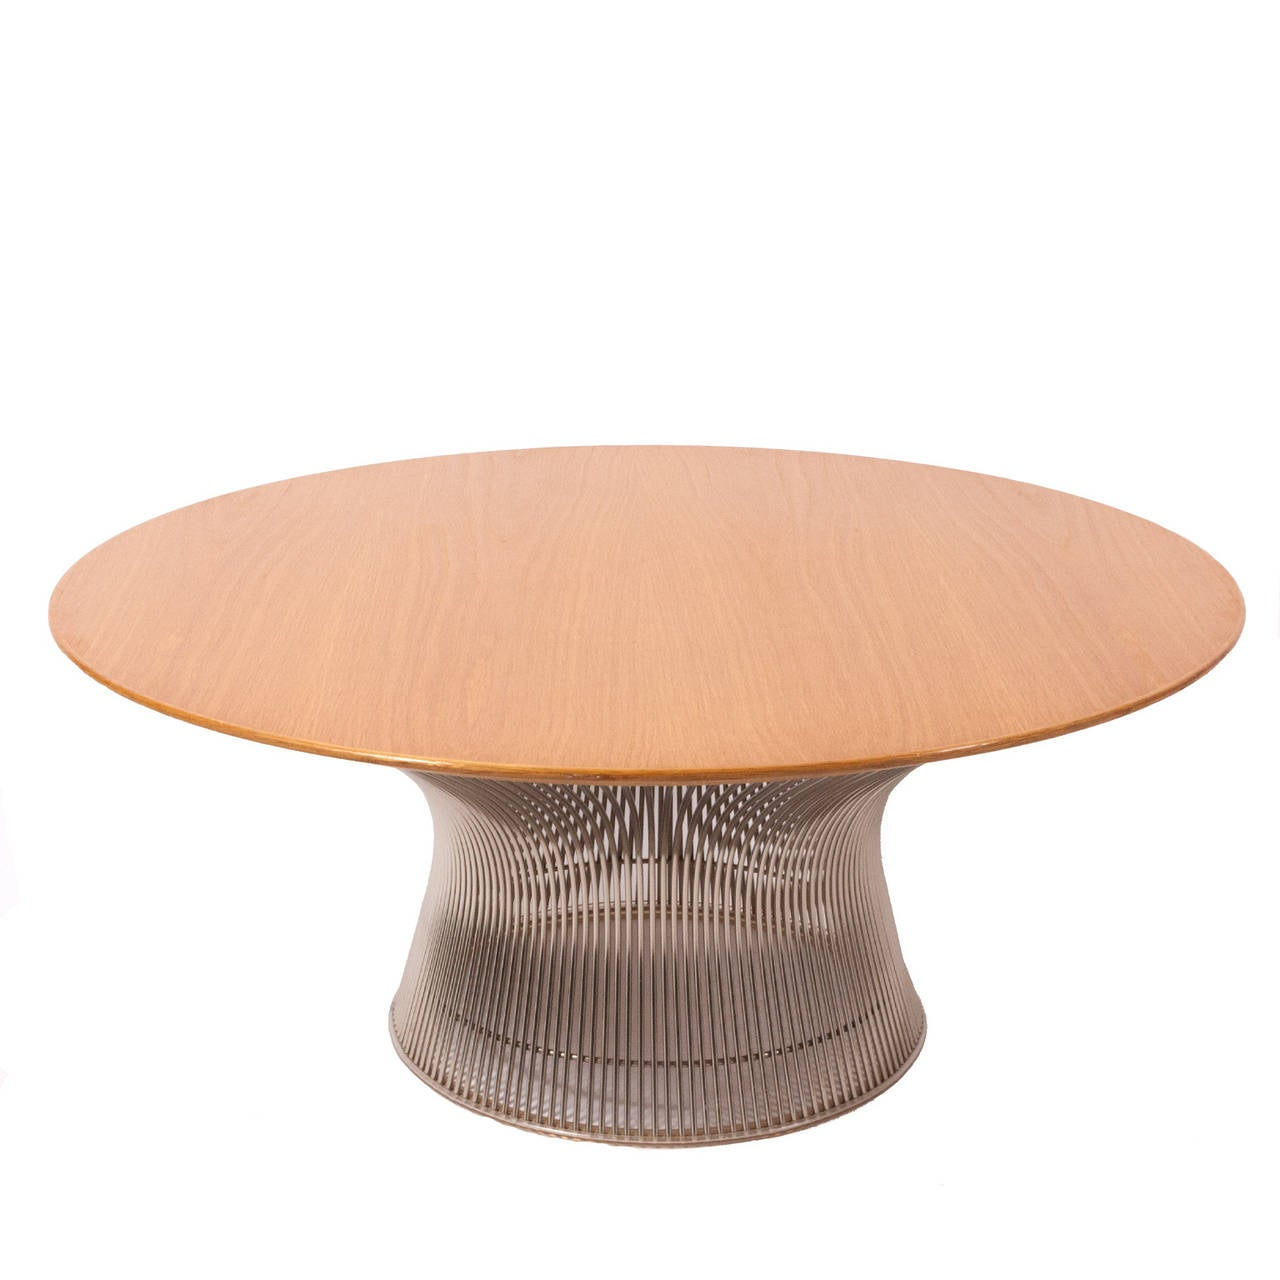 this coffee table by warren platner is no longer available